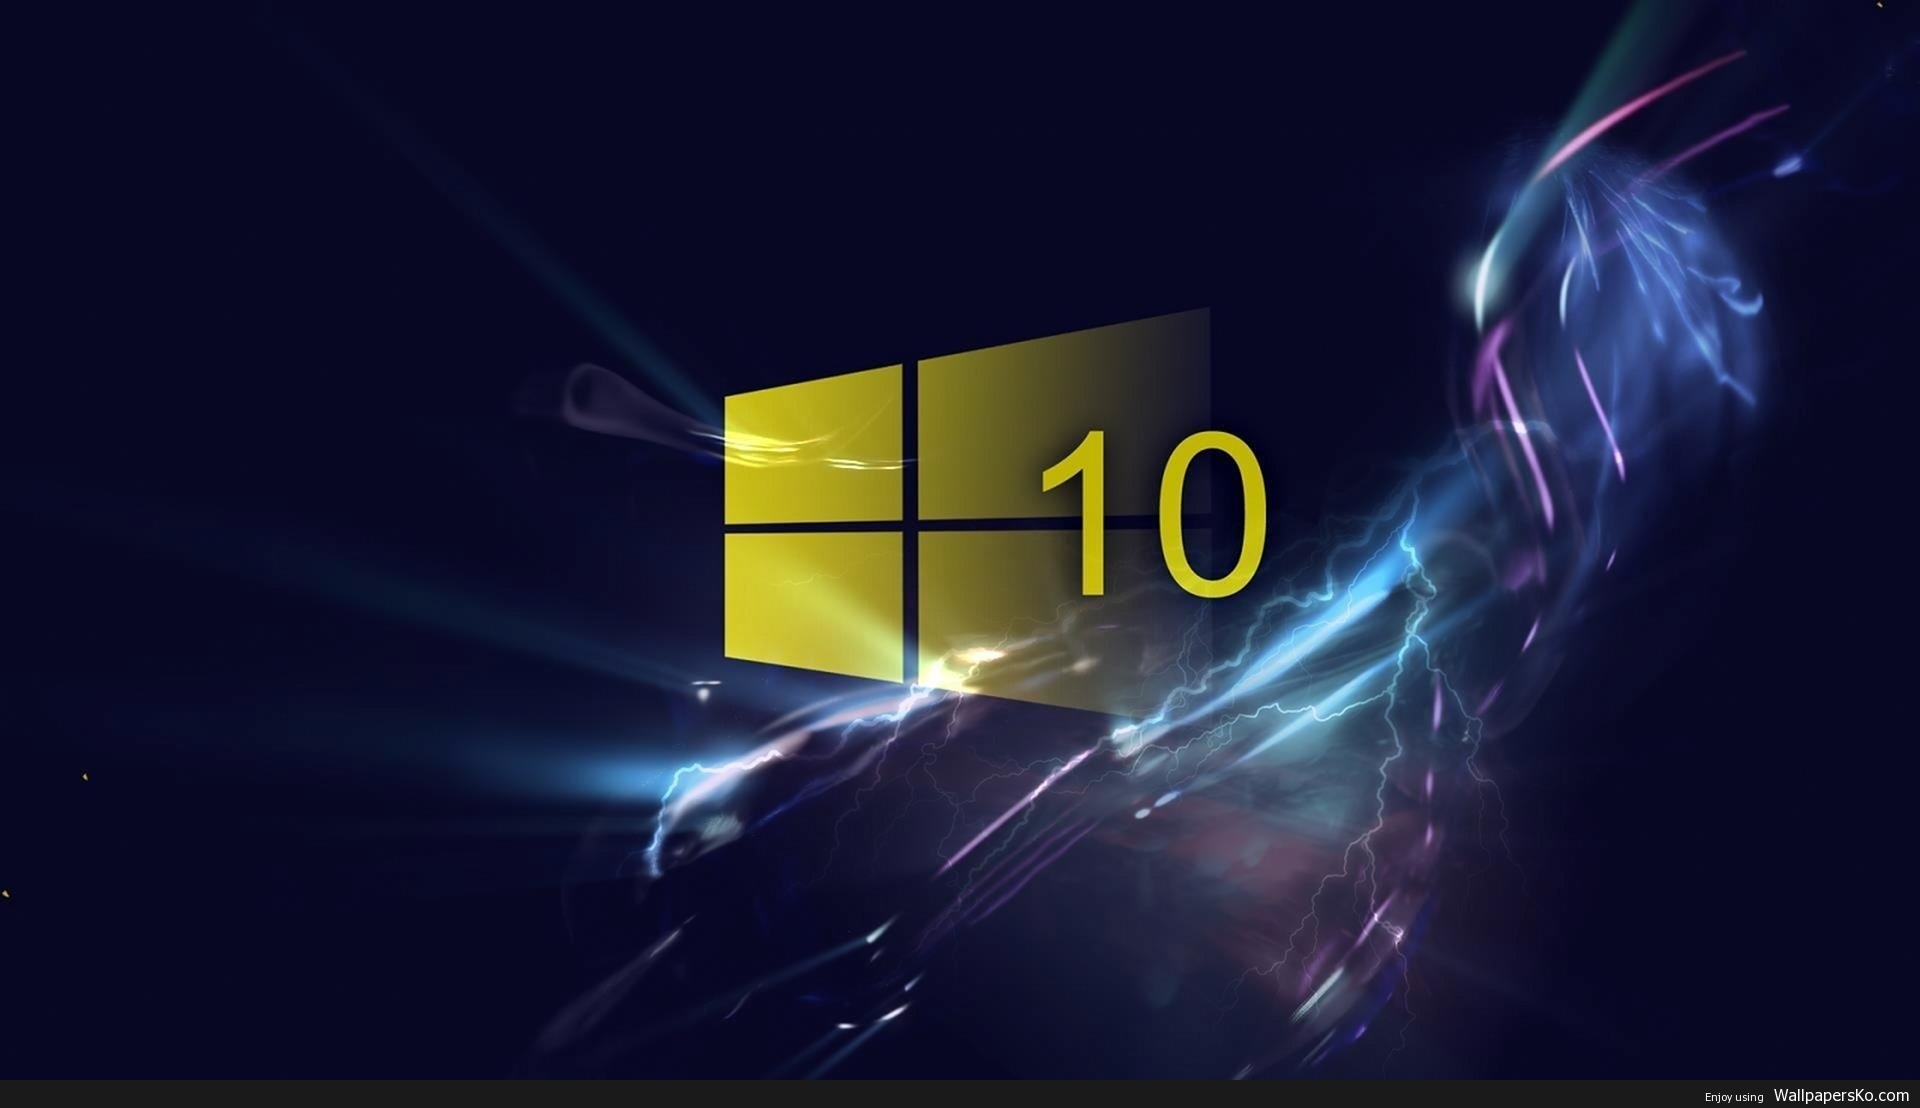 hd backgrounds for windows 10